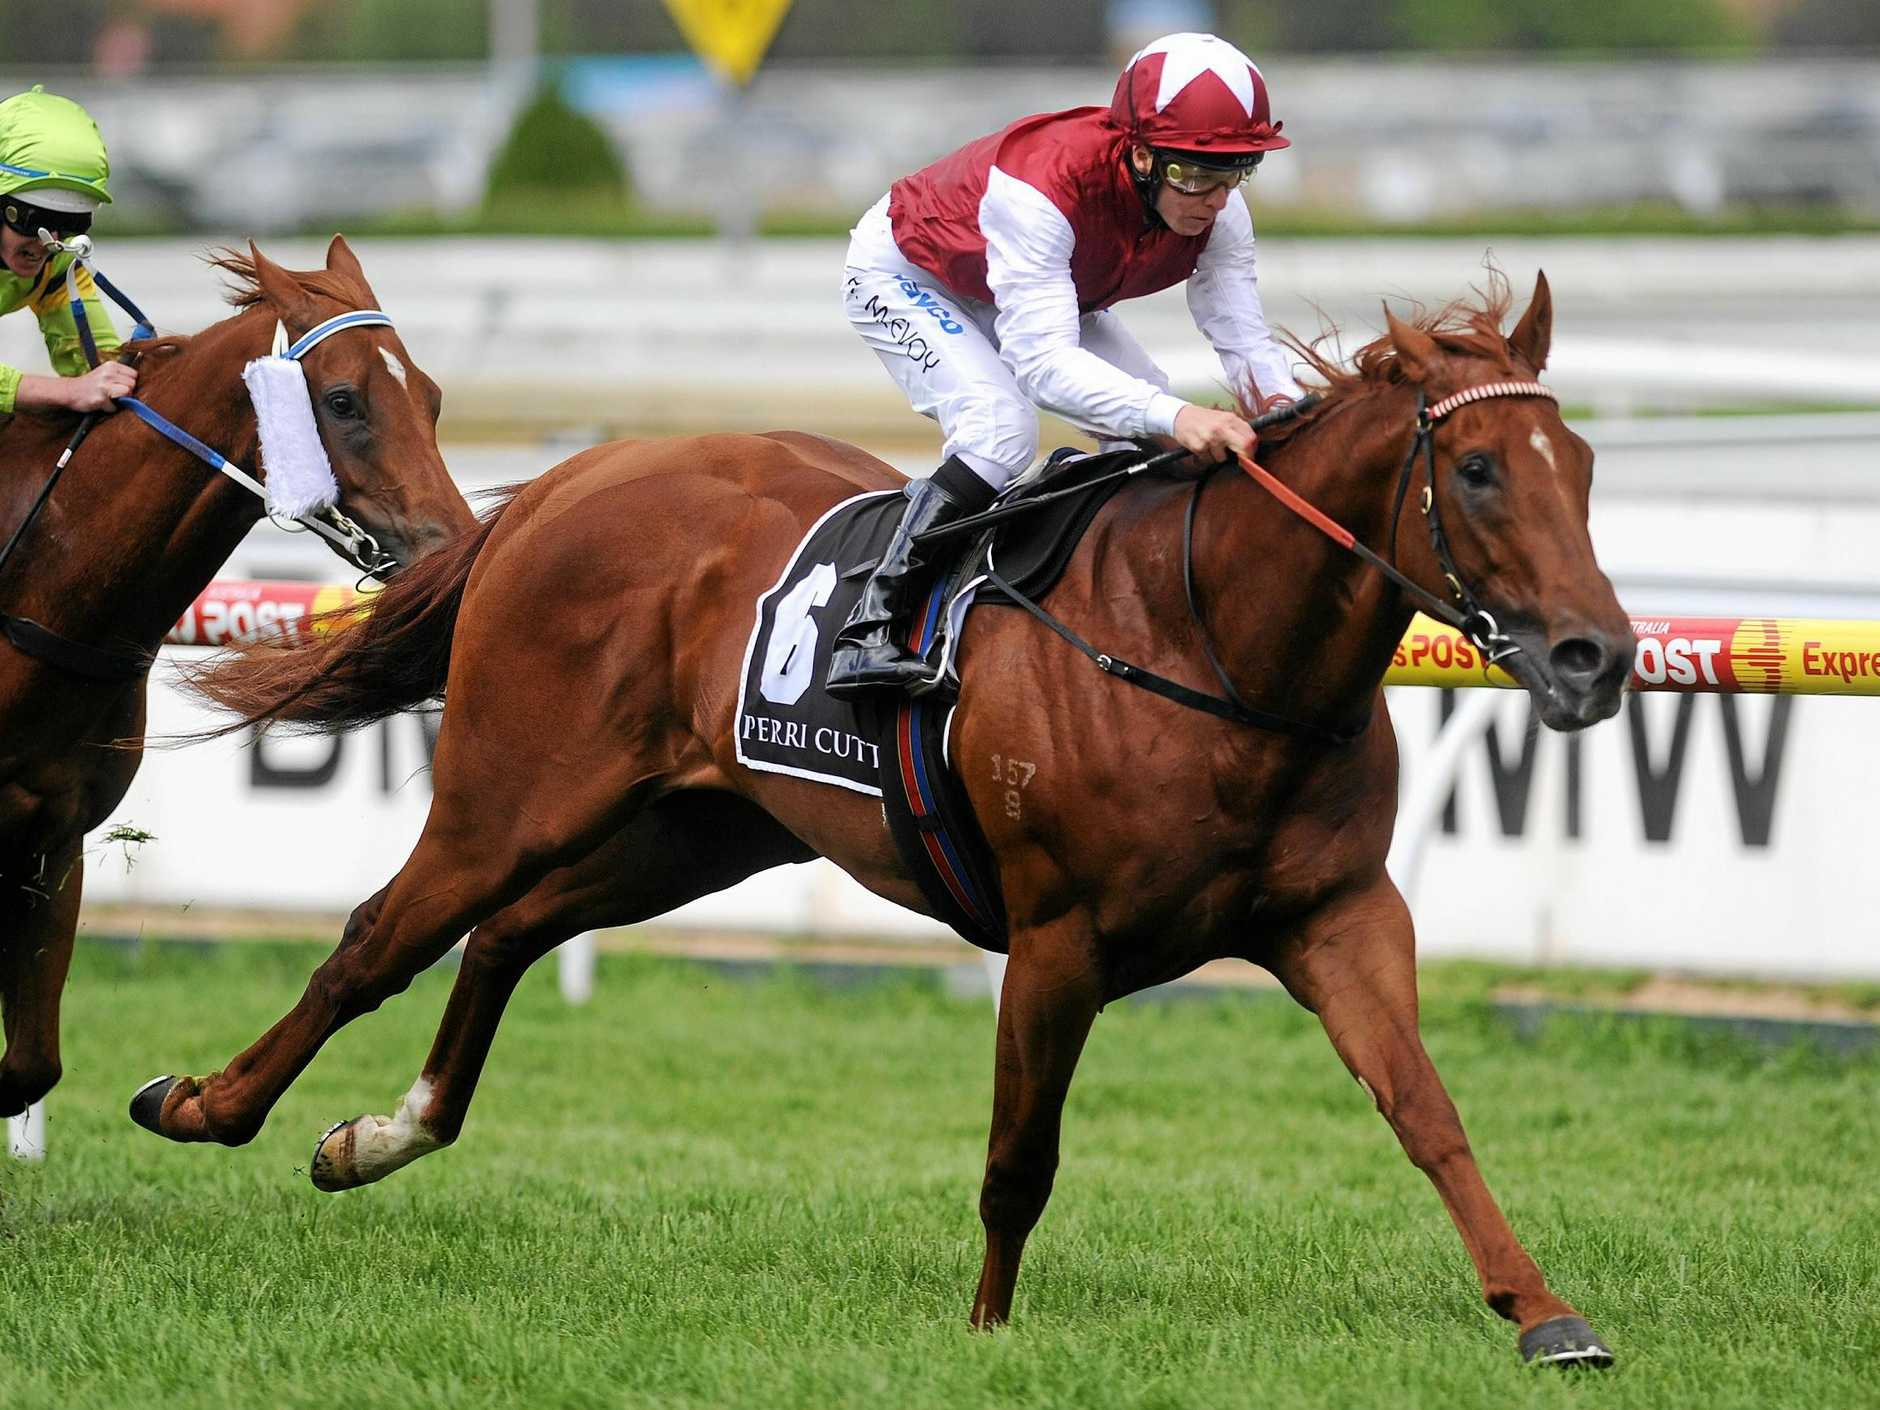 Sepoy's half brother will be up for grabs this week.